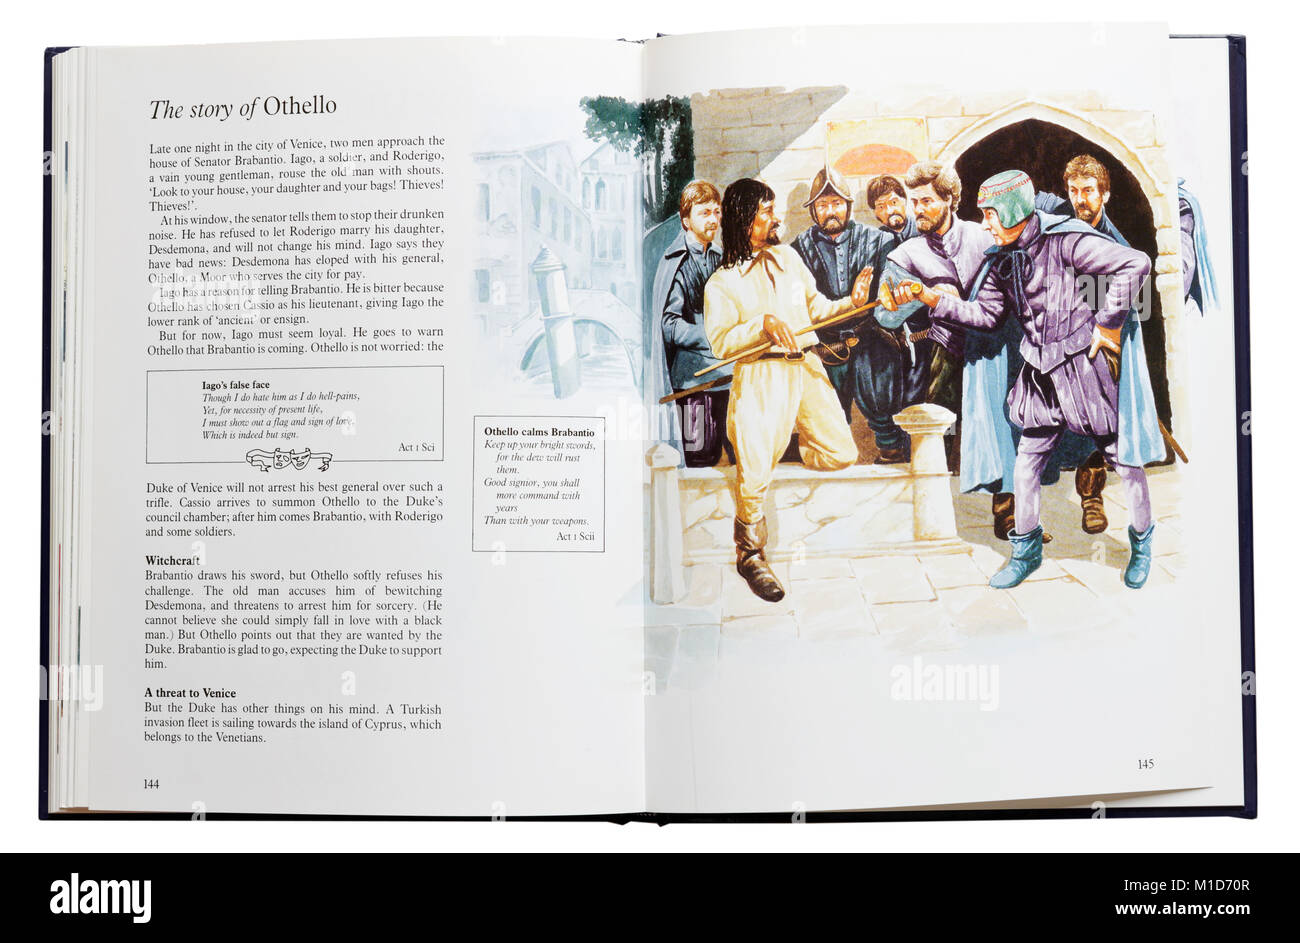 an analysis of the plot and summary of othello Othello summary provides a quick review of the play's plot including every important action in the play othello summary is divided by the five acts of the play and is an an ideal introduction before reading the original text.